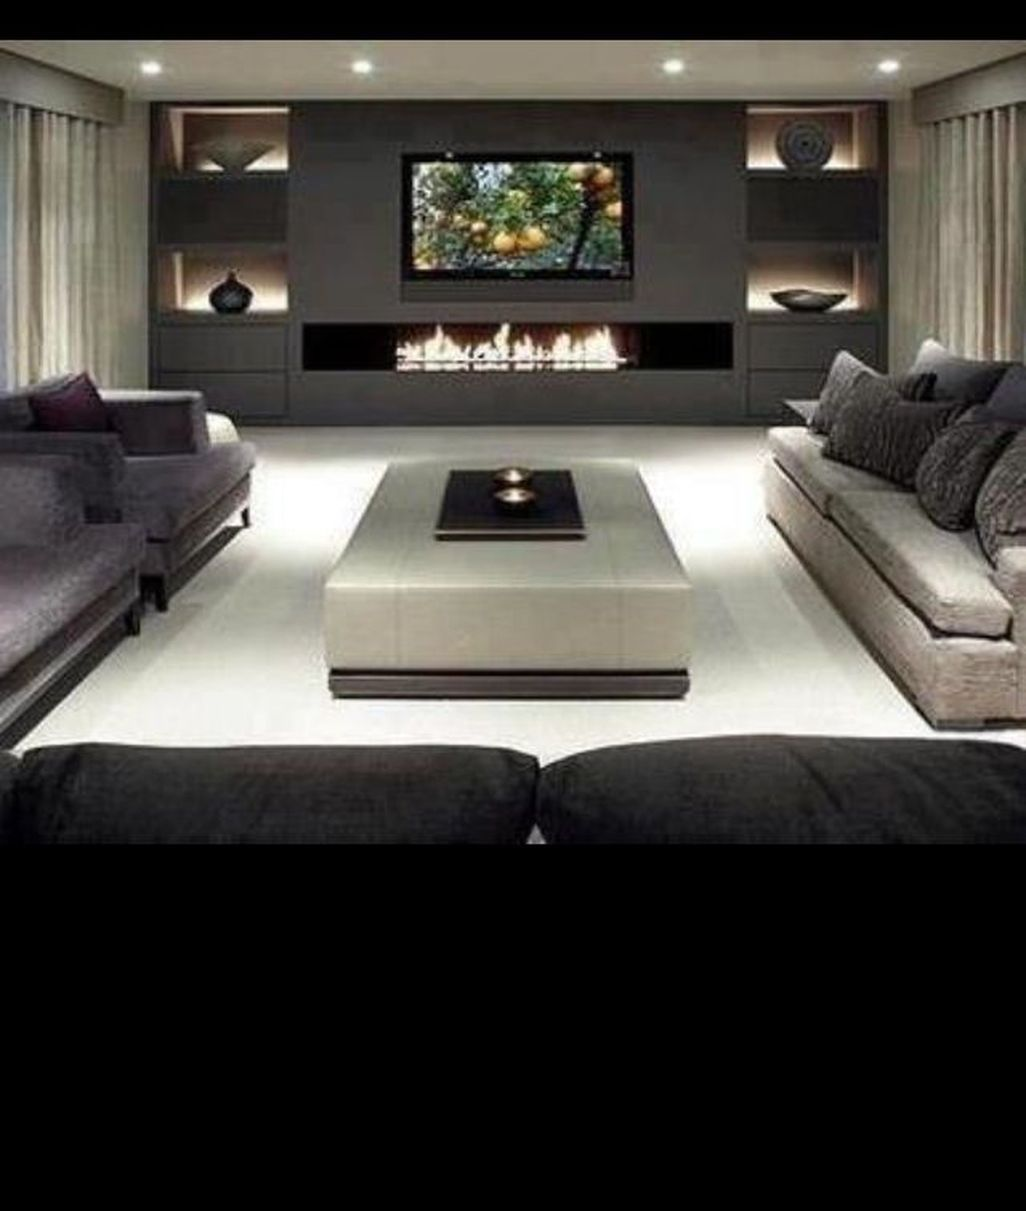 Awesome 49 Amazing Modern Apartment Living Room Design Ideas More At Htt Apartment Living Room Design Modern Apartment Living Room Living Room Decor Apartment